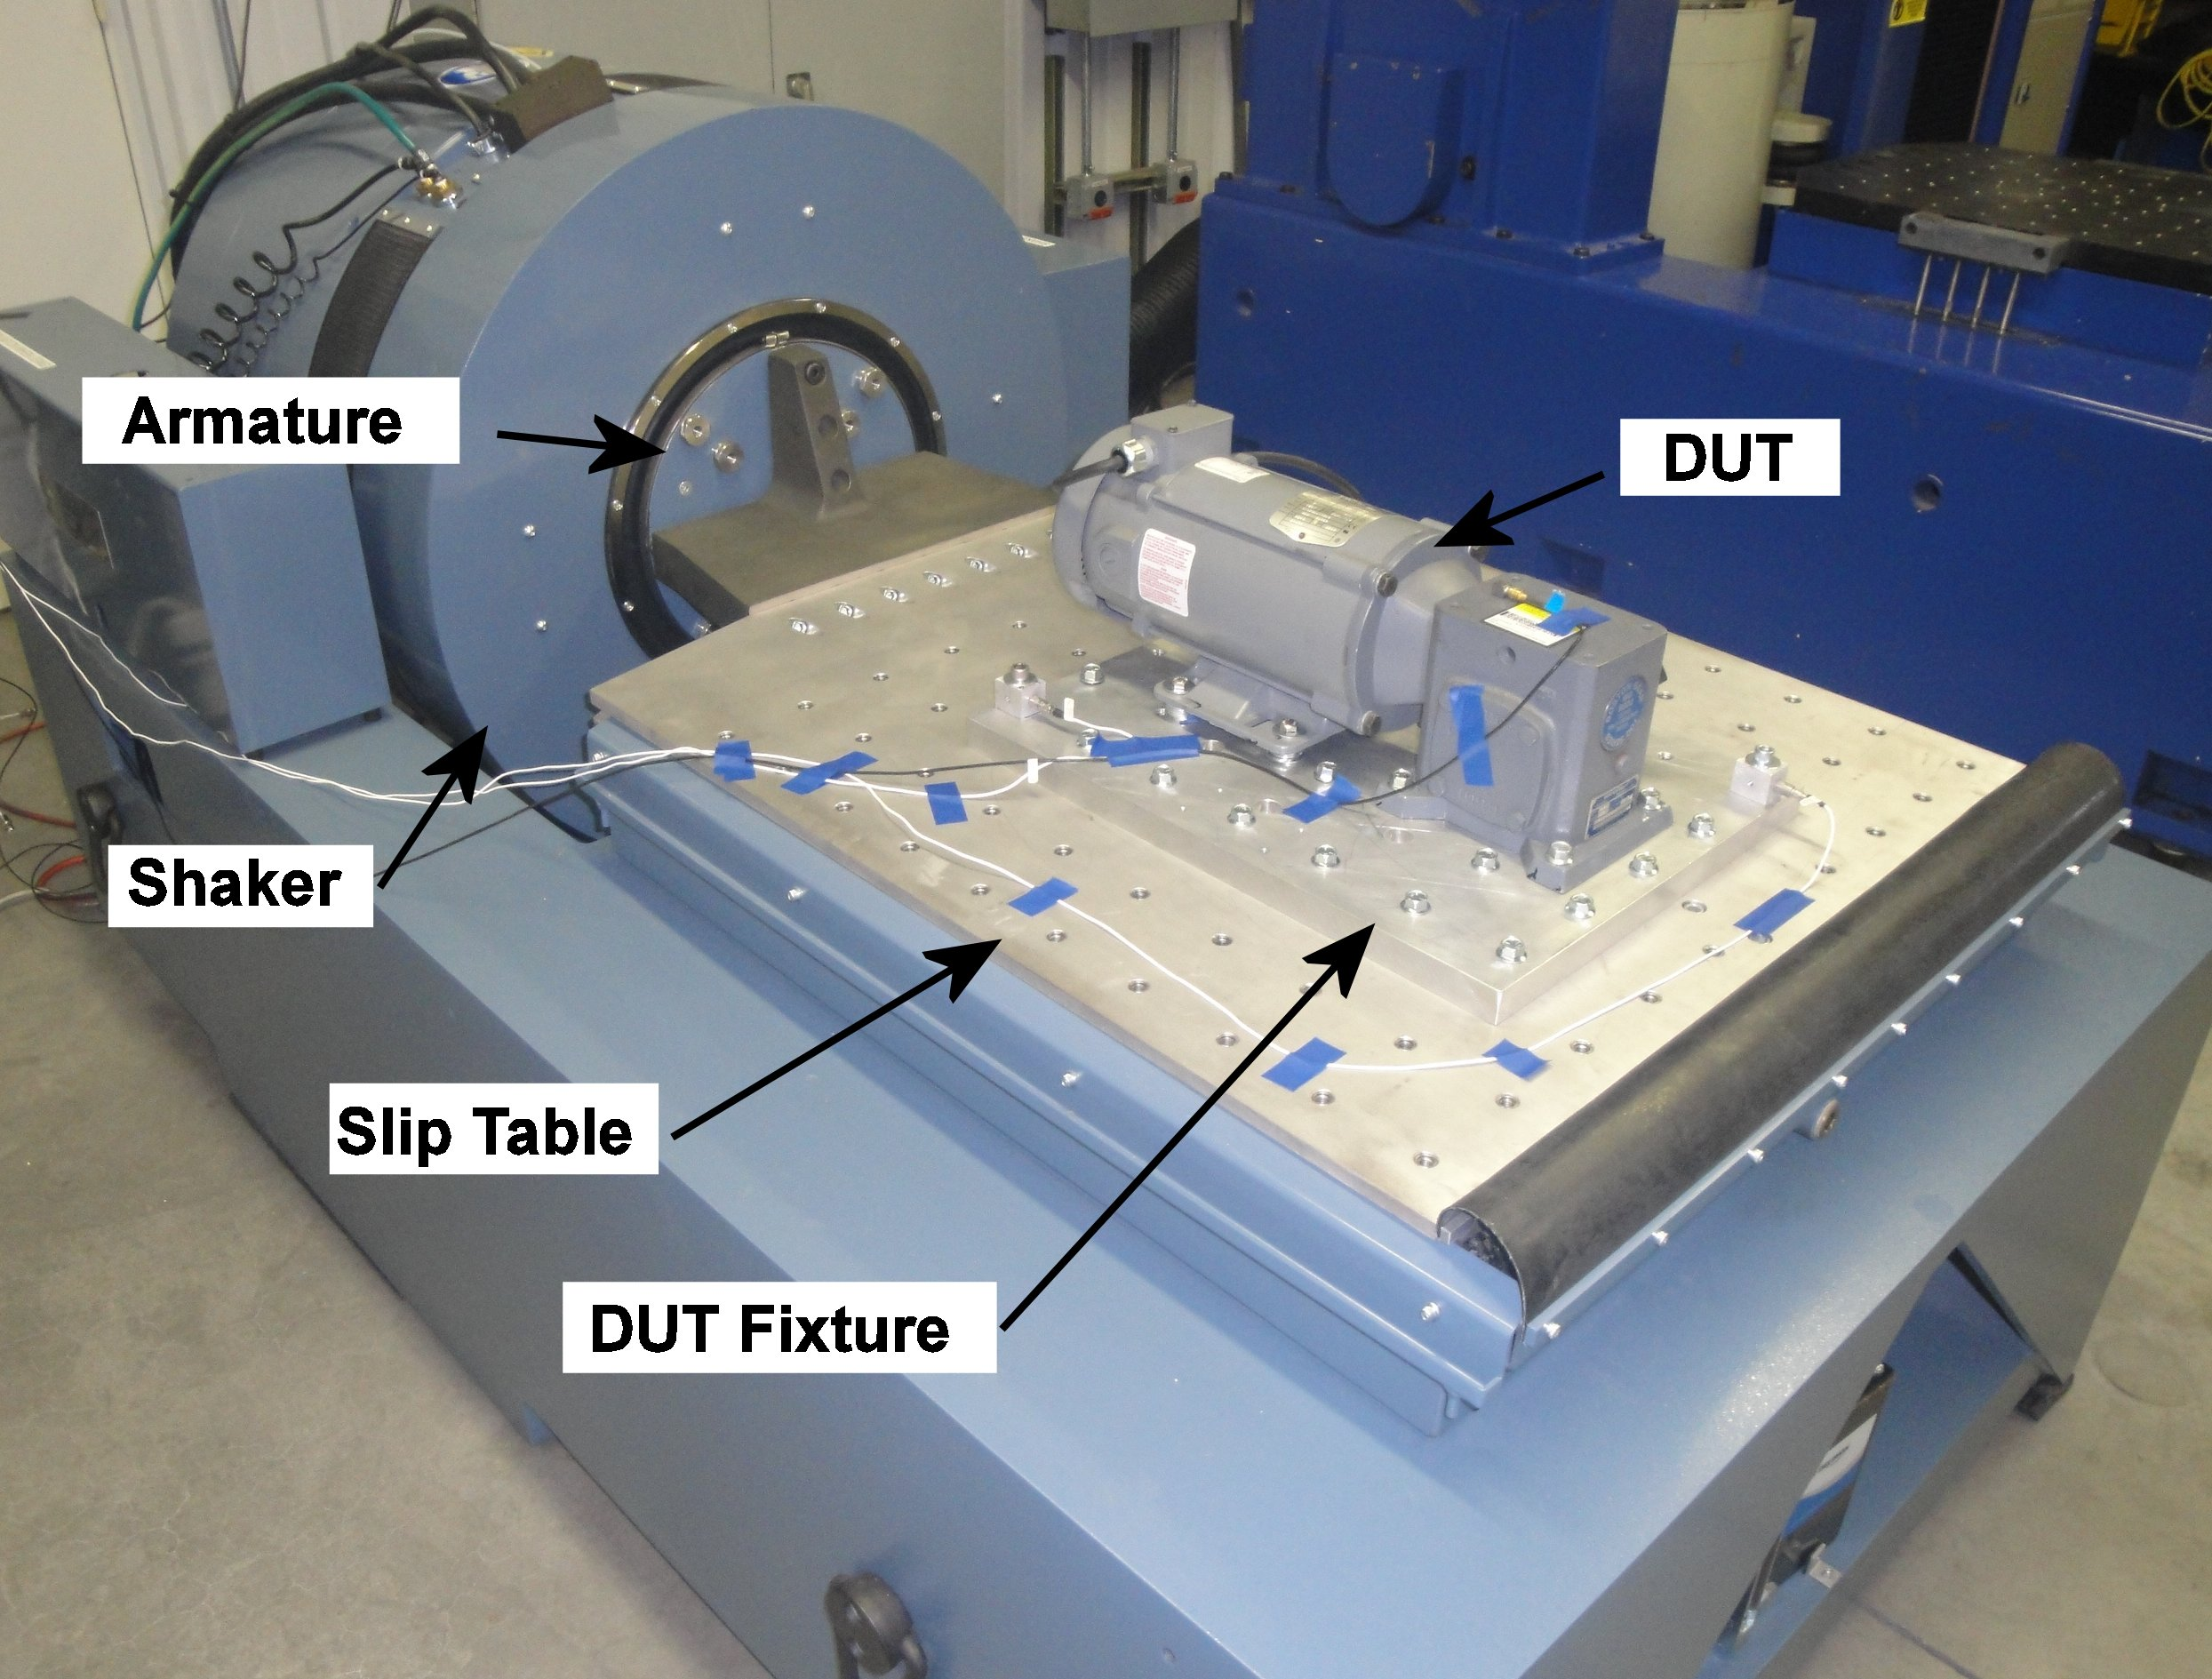 Design For Testing : Choosing a vibration test lab product reliability testing